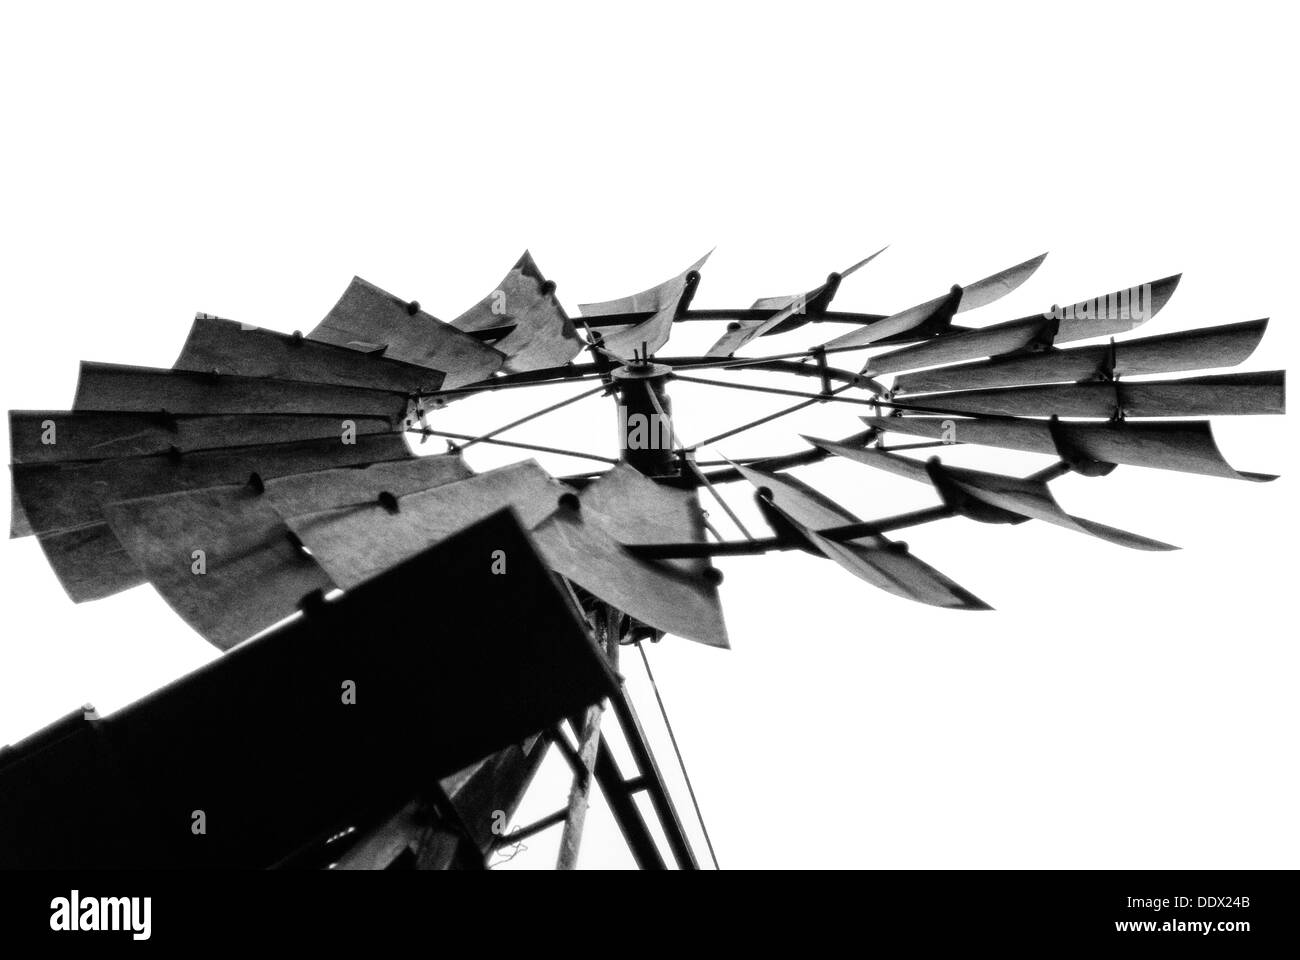 A black and white photo of a water pumping windmill taken from below - Stock Image